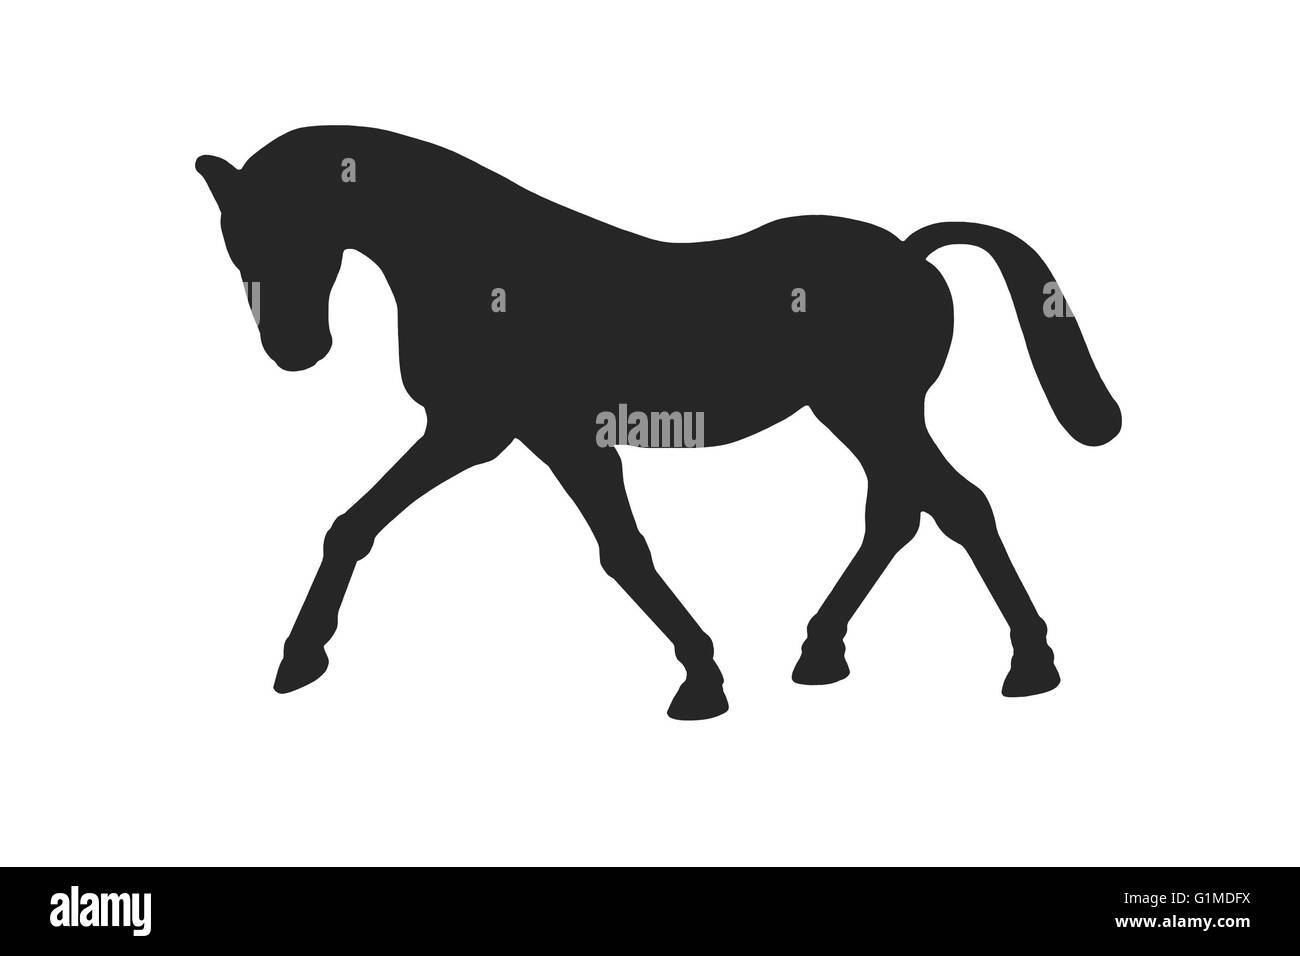 An image showing a horse or pony shape in black silhouetted on white - Stock Image